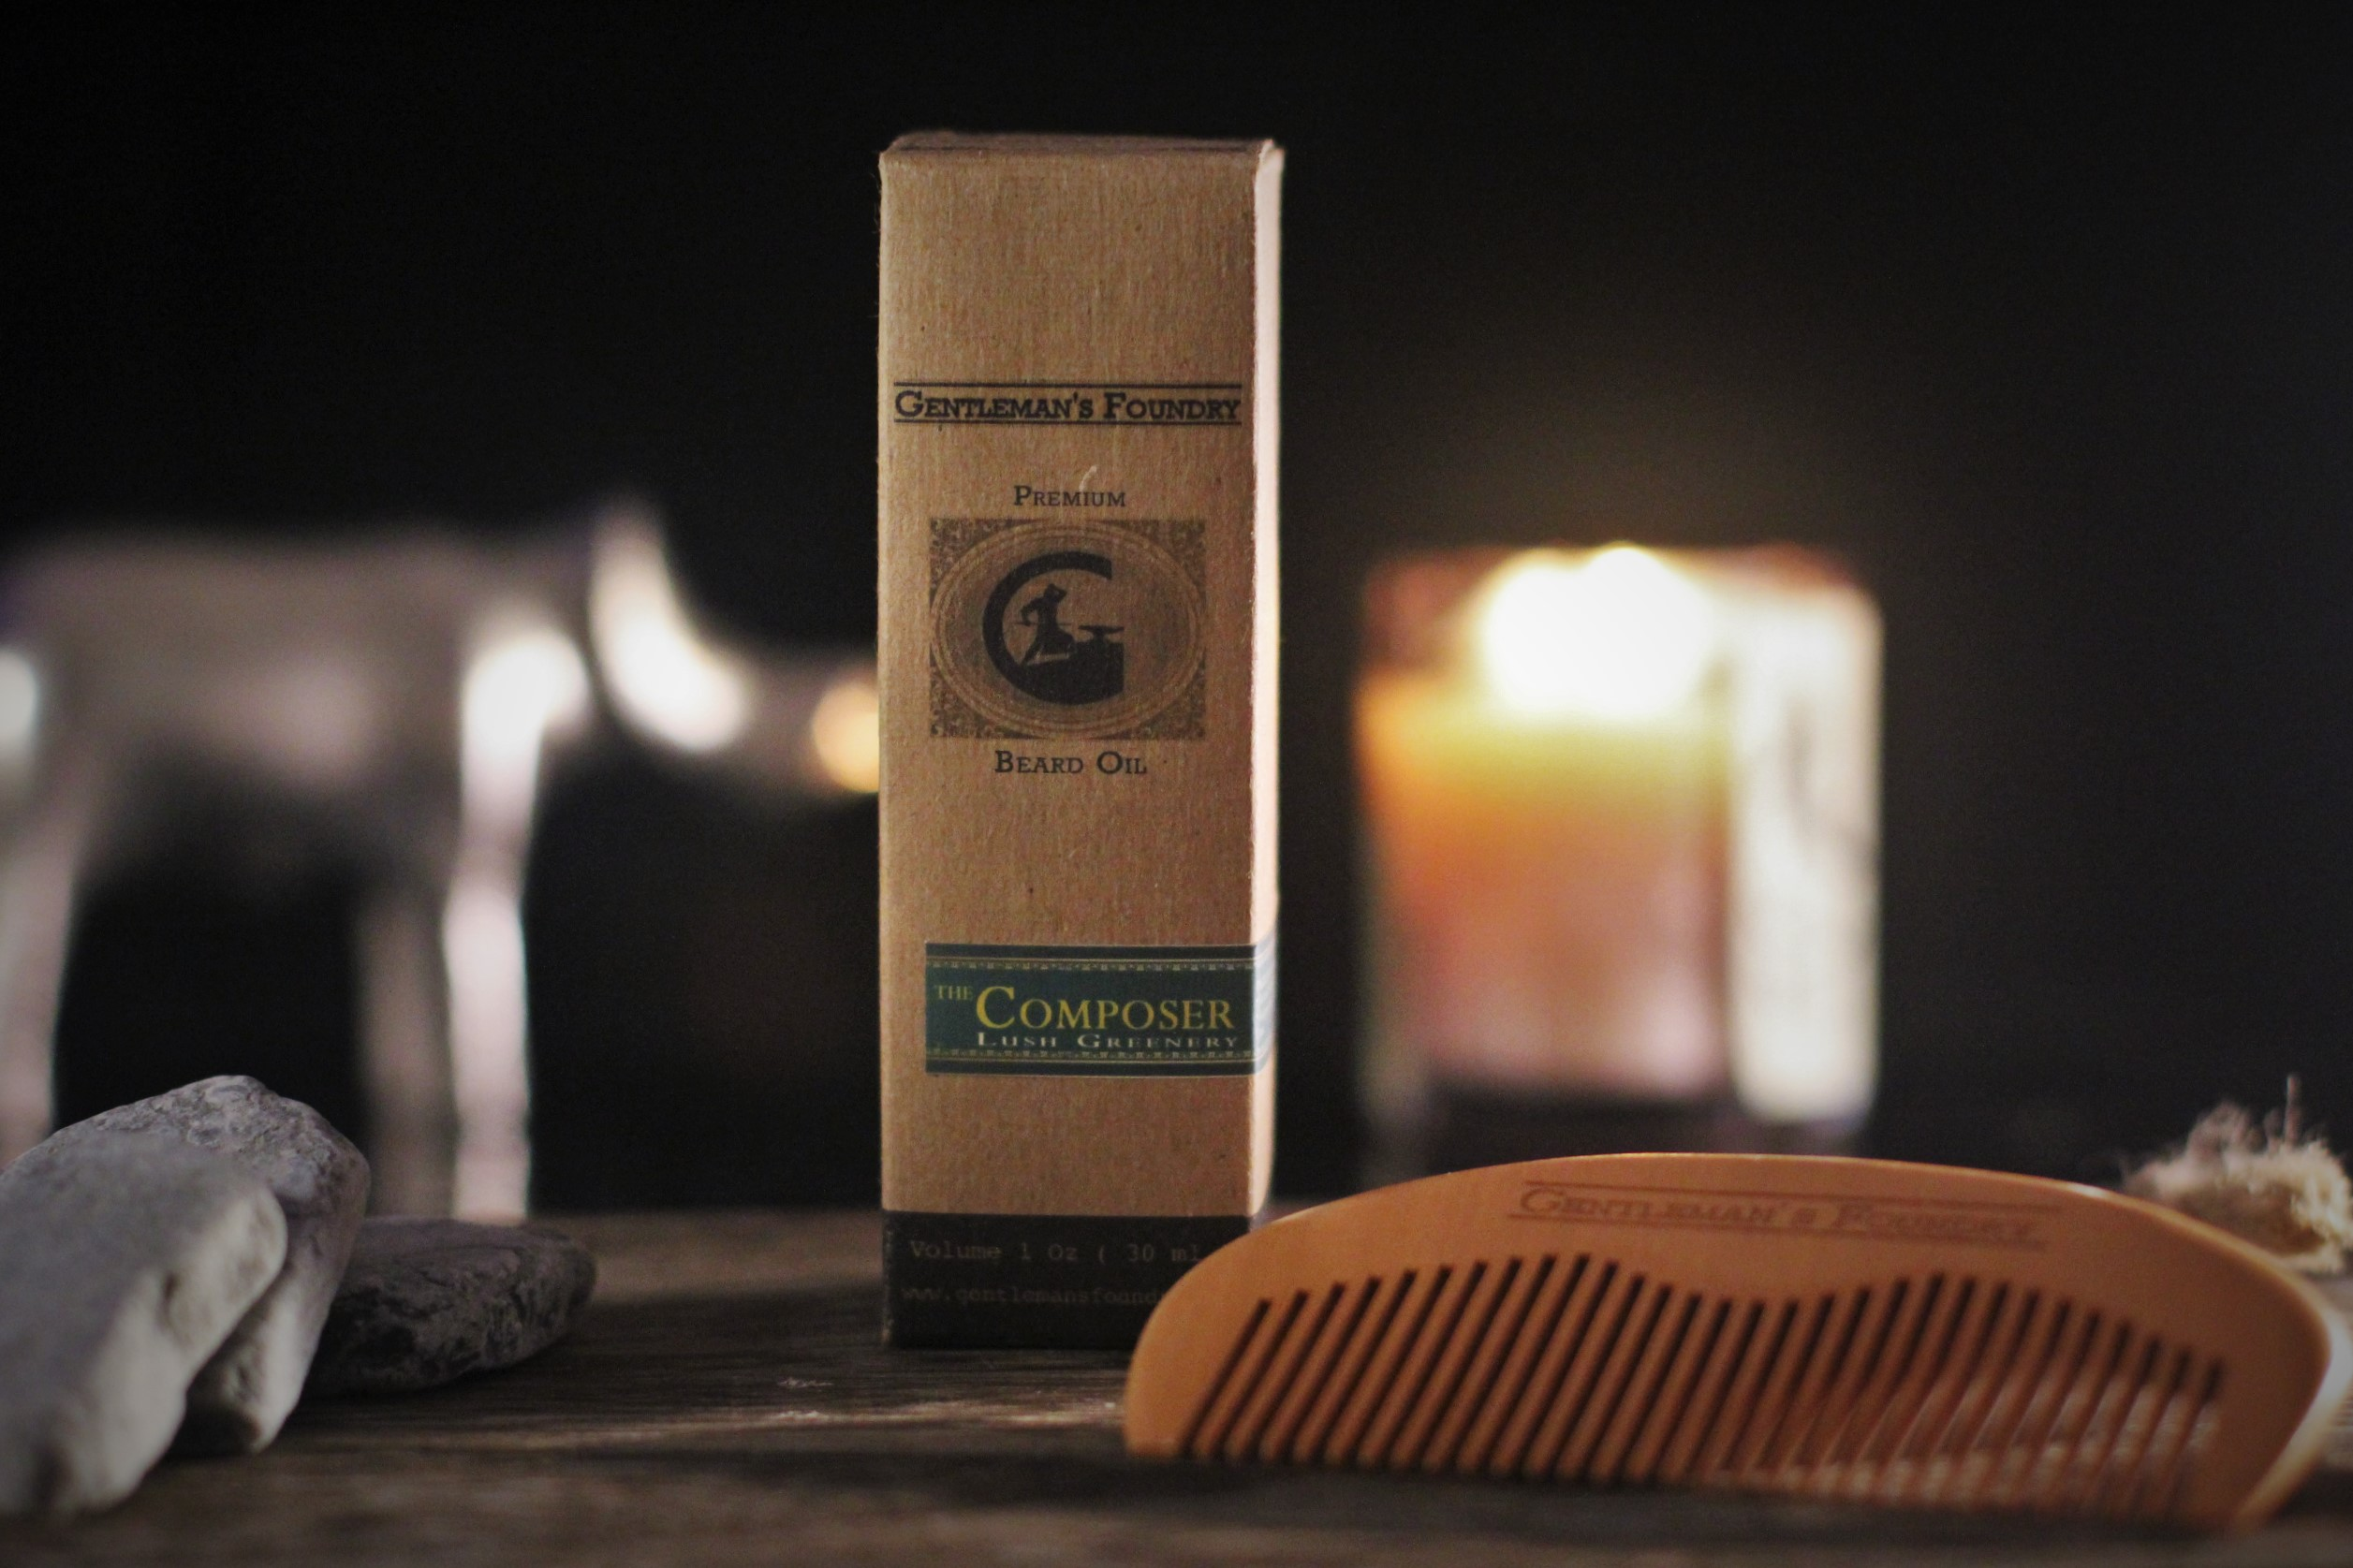 Introducing: Gentleman's Foundry Cherry Wood Combs: Free When You Buy Beard Oil For A Limited Time